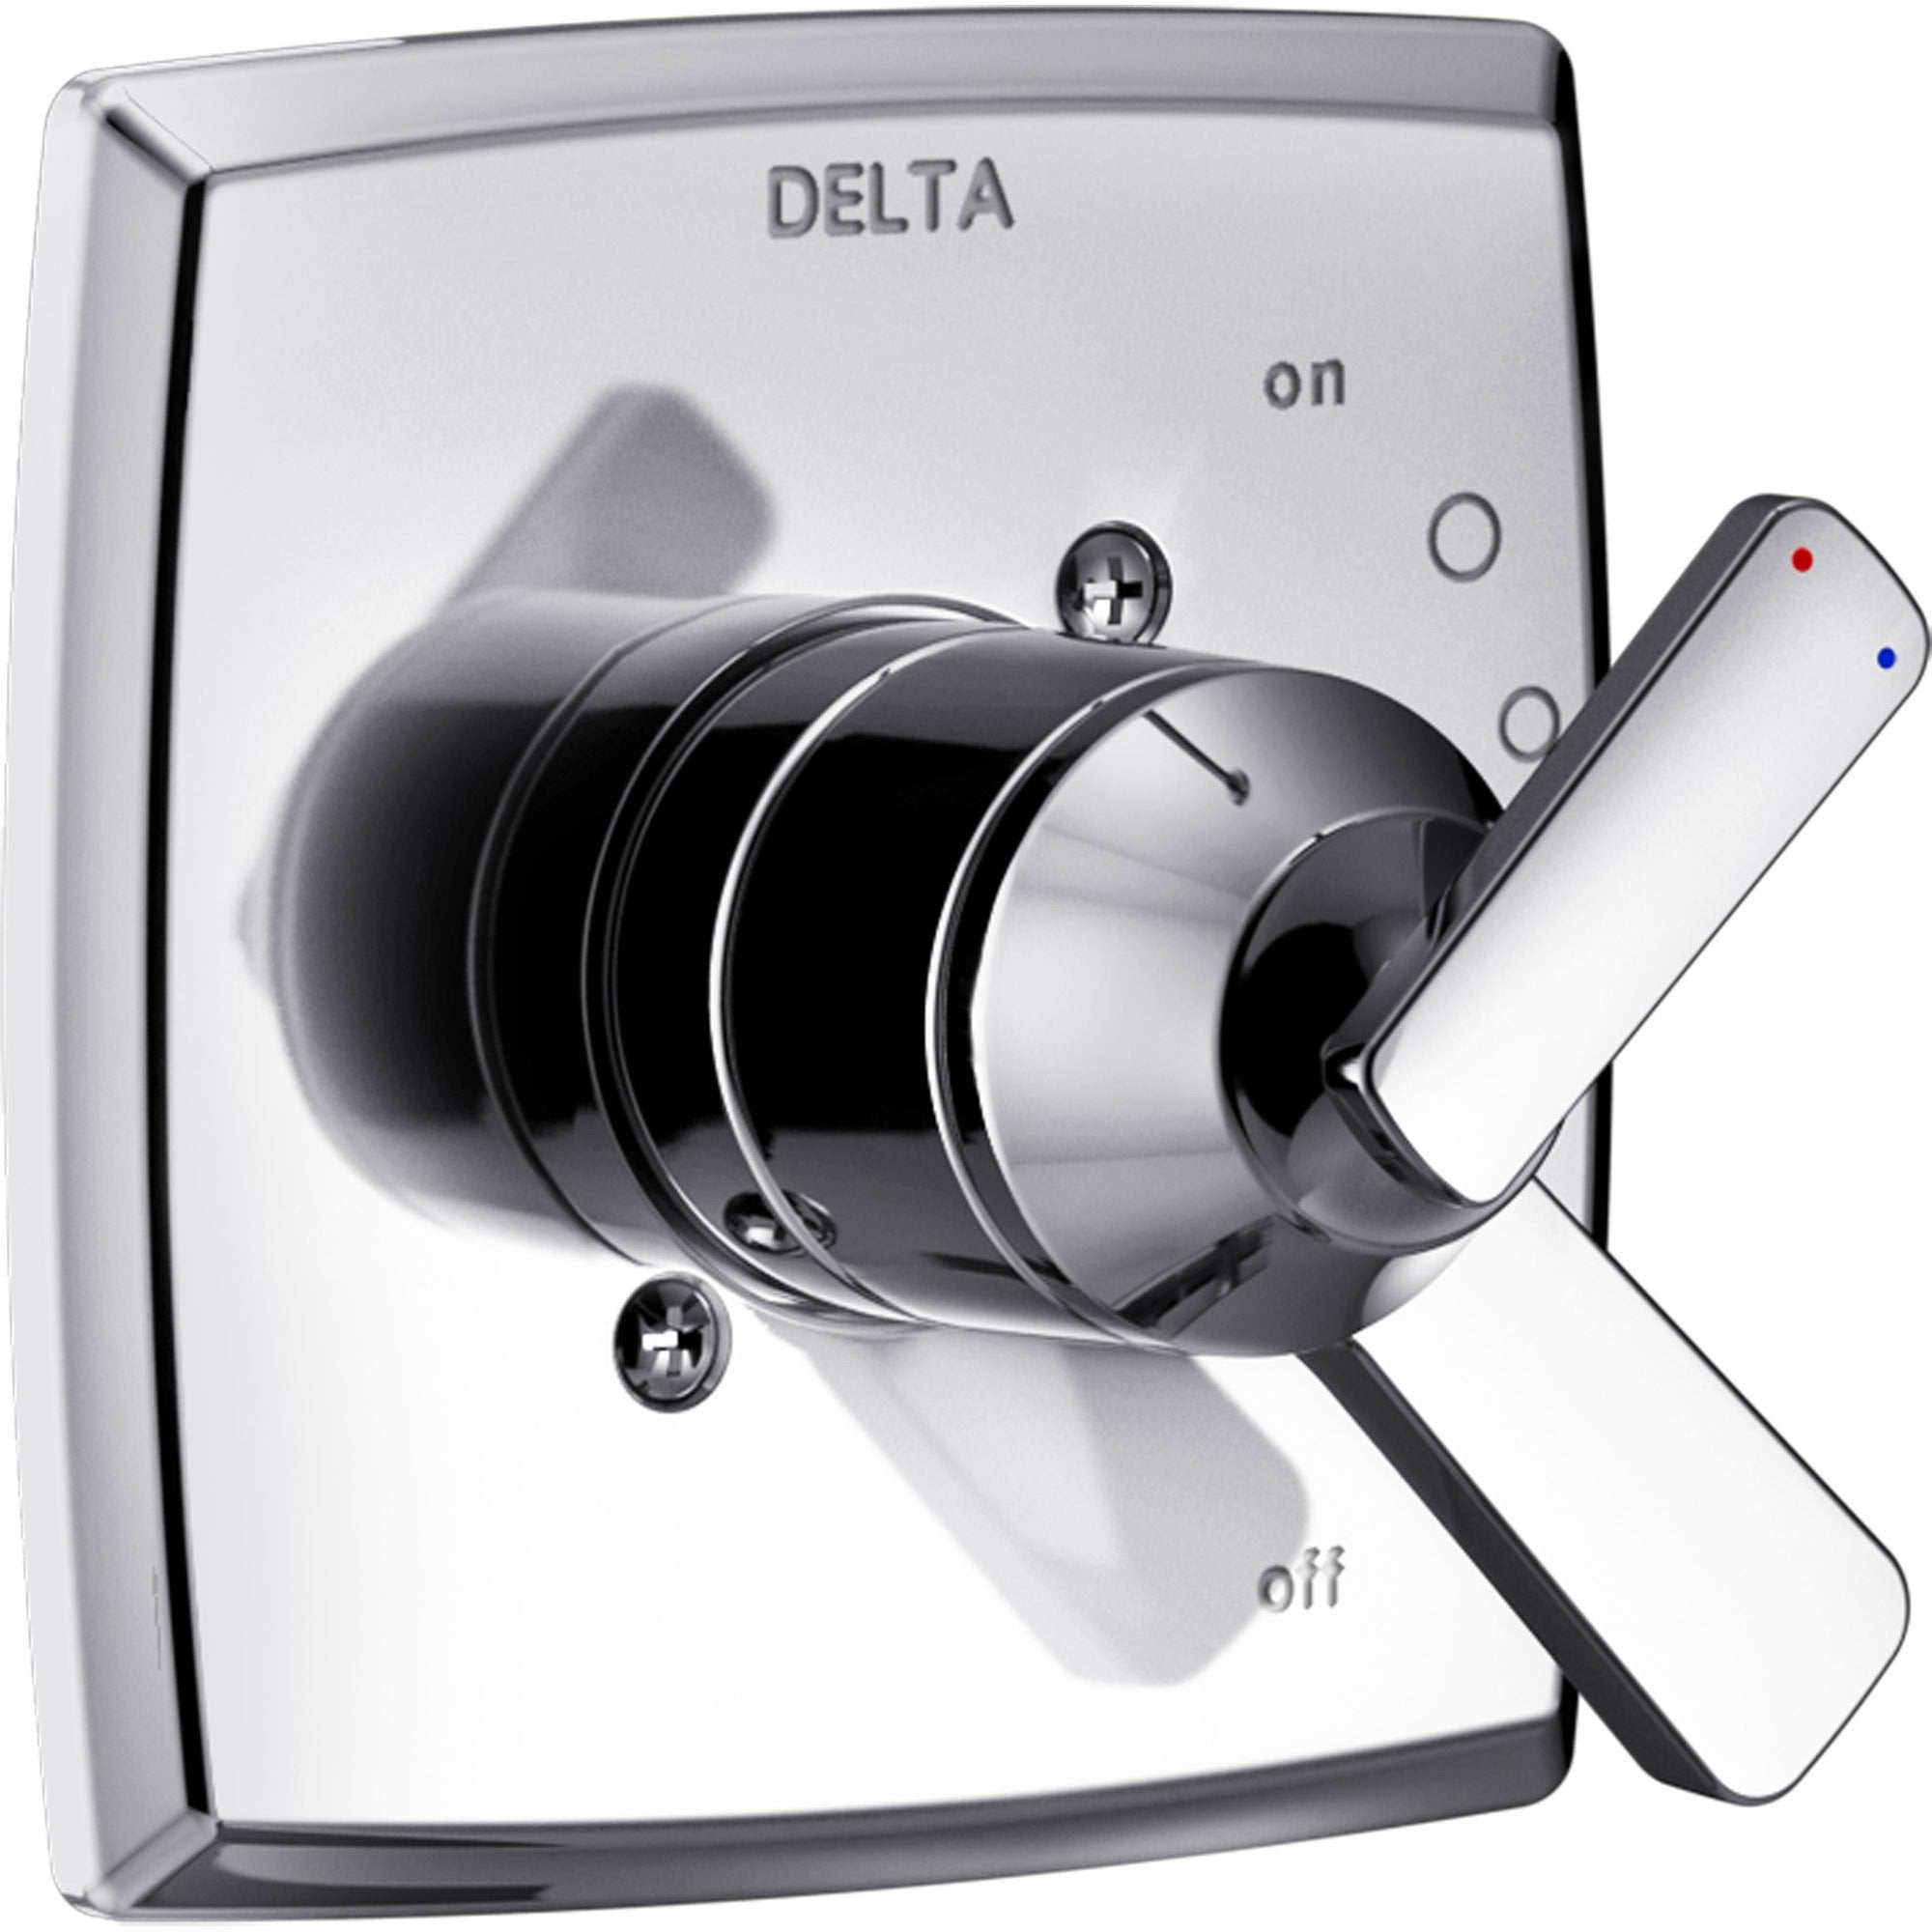 Delta Ashlyn Modern Chrome Finish 17 Series Dual Temperature and Pressure Shower Faucet Control INCLUDES Rough-in Valve with Stops D1157V